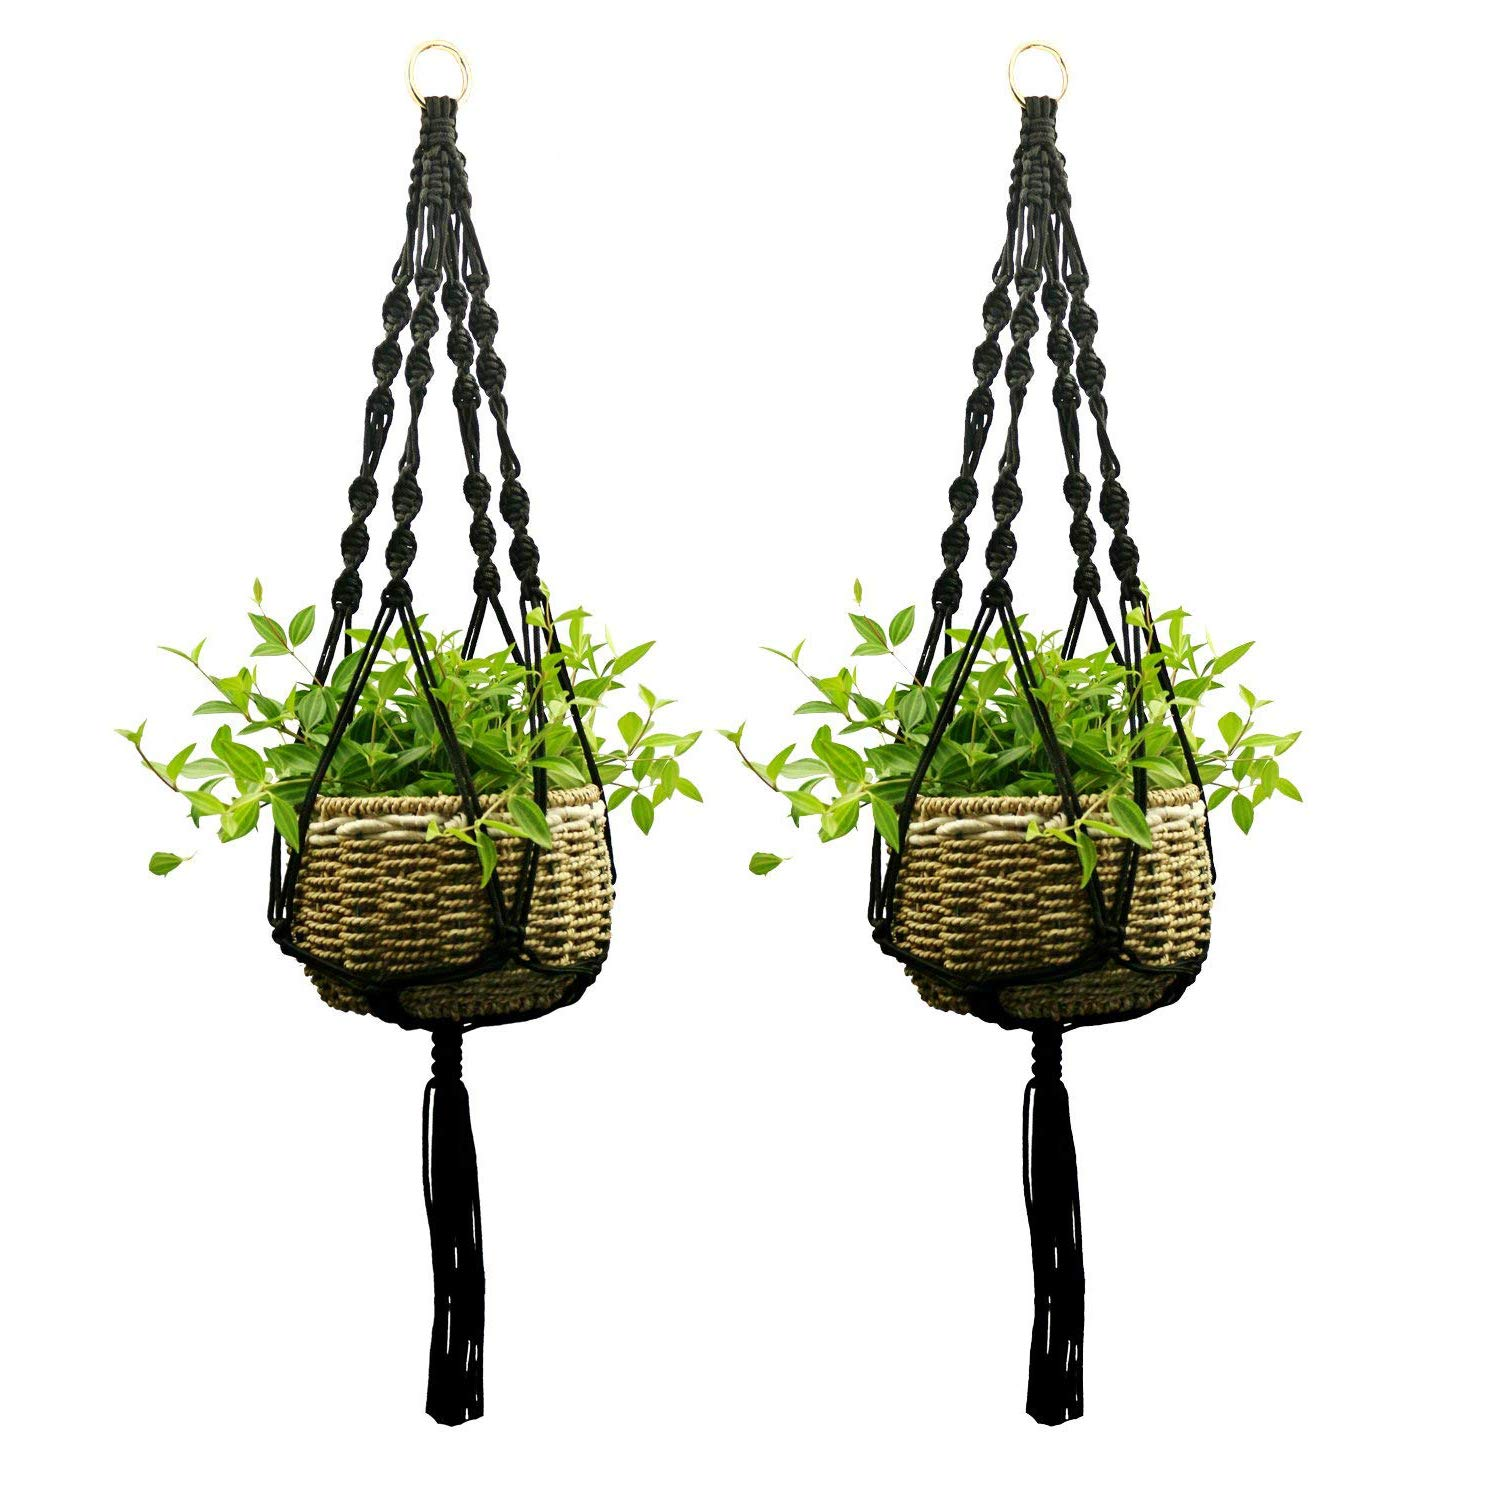 Plant Hangers, ETSAMOR 6pcs 3 Sizes Hanging Planter Basket Rope Holder and 6 pcs Ceiling Hook with Key Ring for Indoor Outdoor Plant Decorations